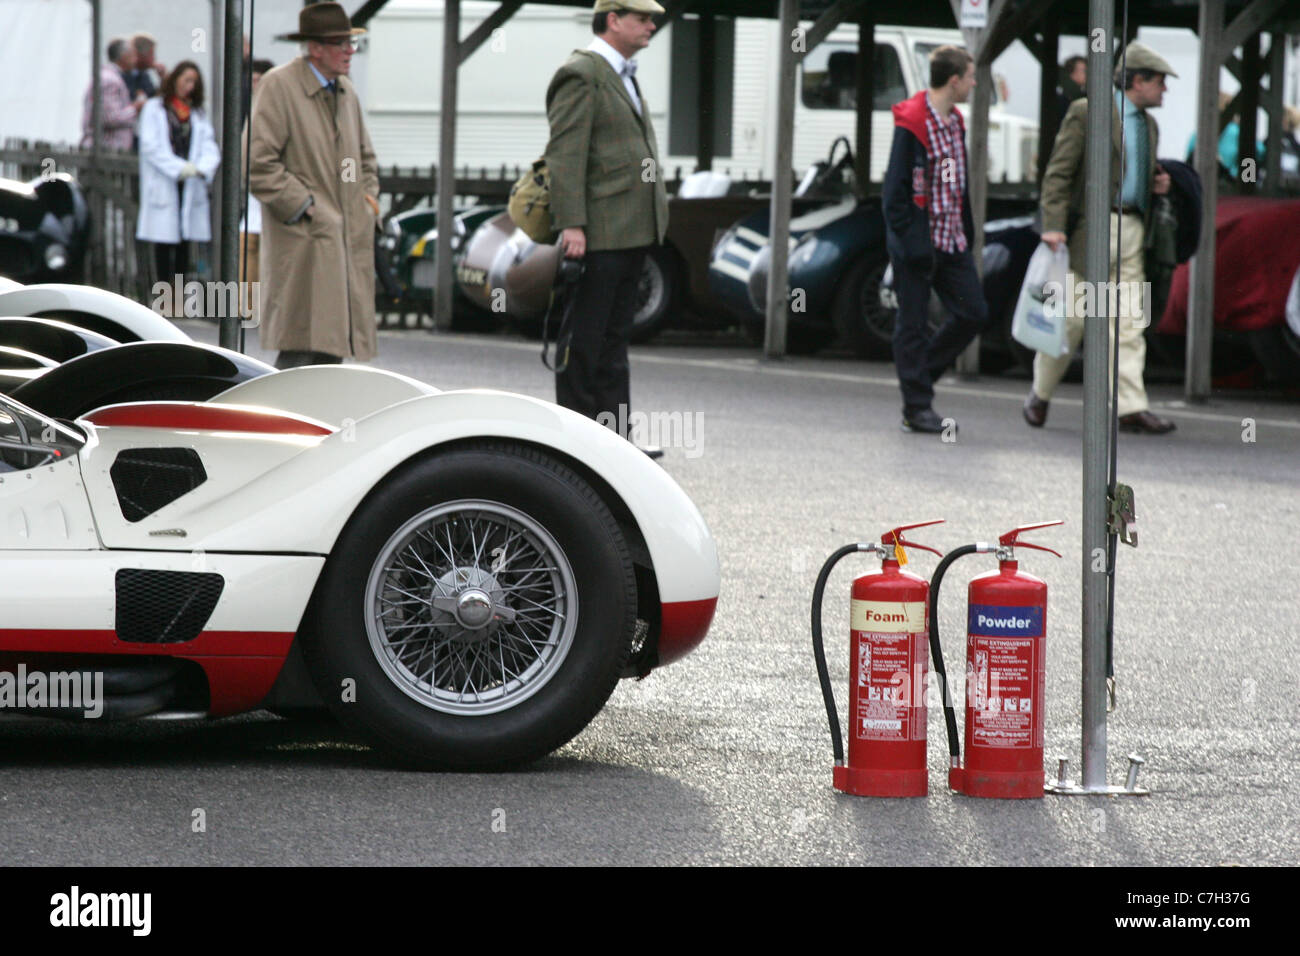 Fire extinguishers sitting next to the front of a historic racing car at the Goodwood Revival, West, Sussex, UK. - Stock Image